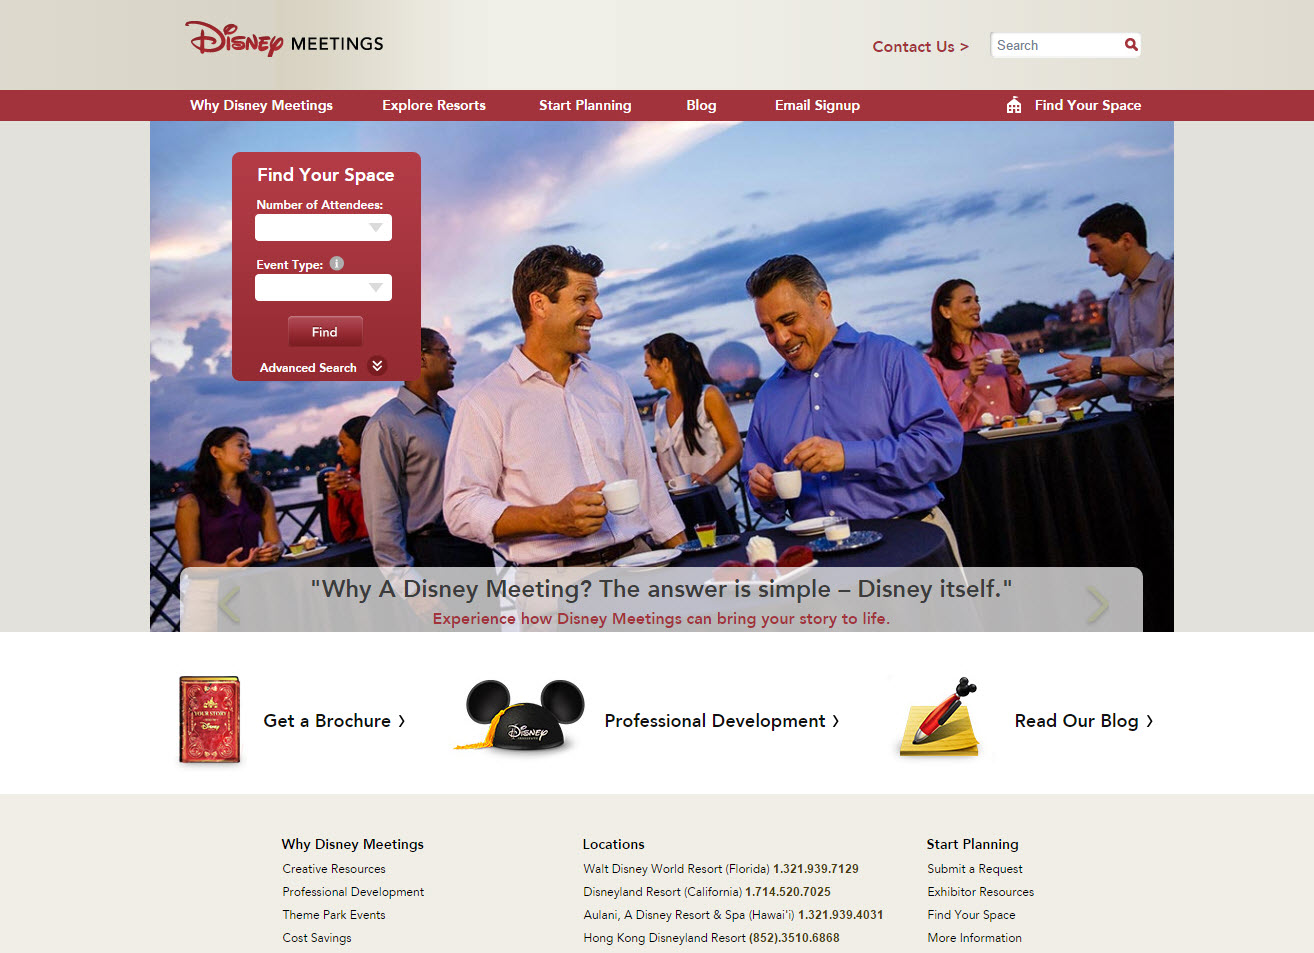 DISNEYLANDMEETINGS.COM